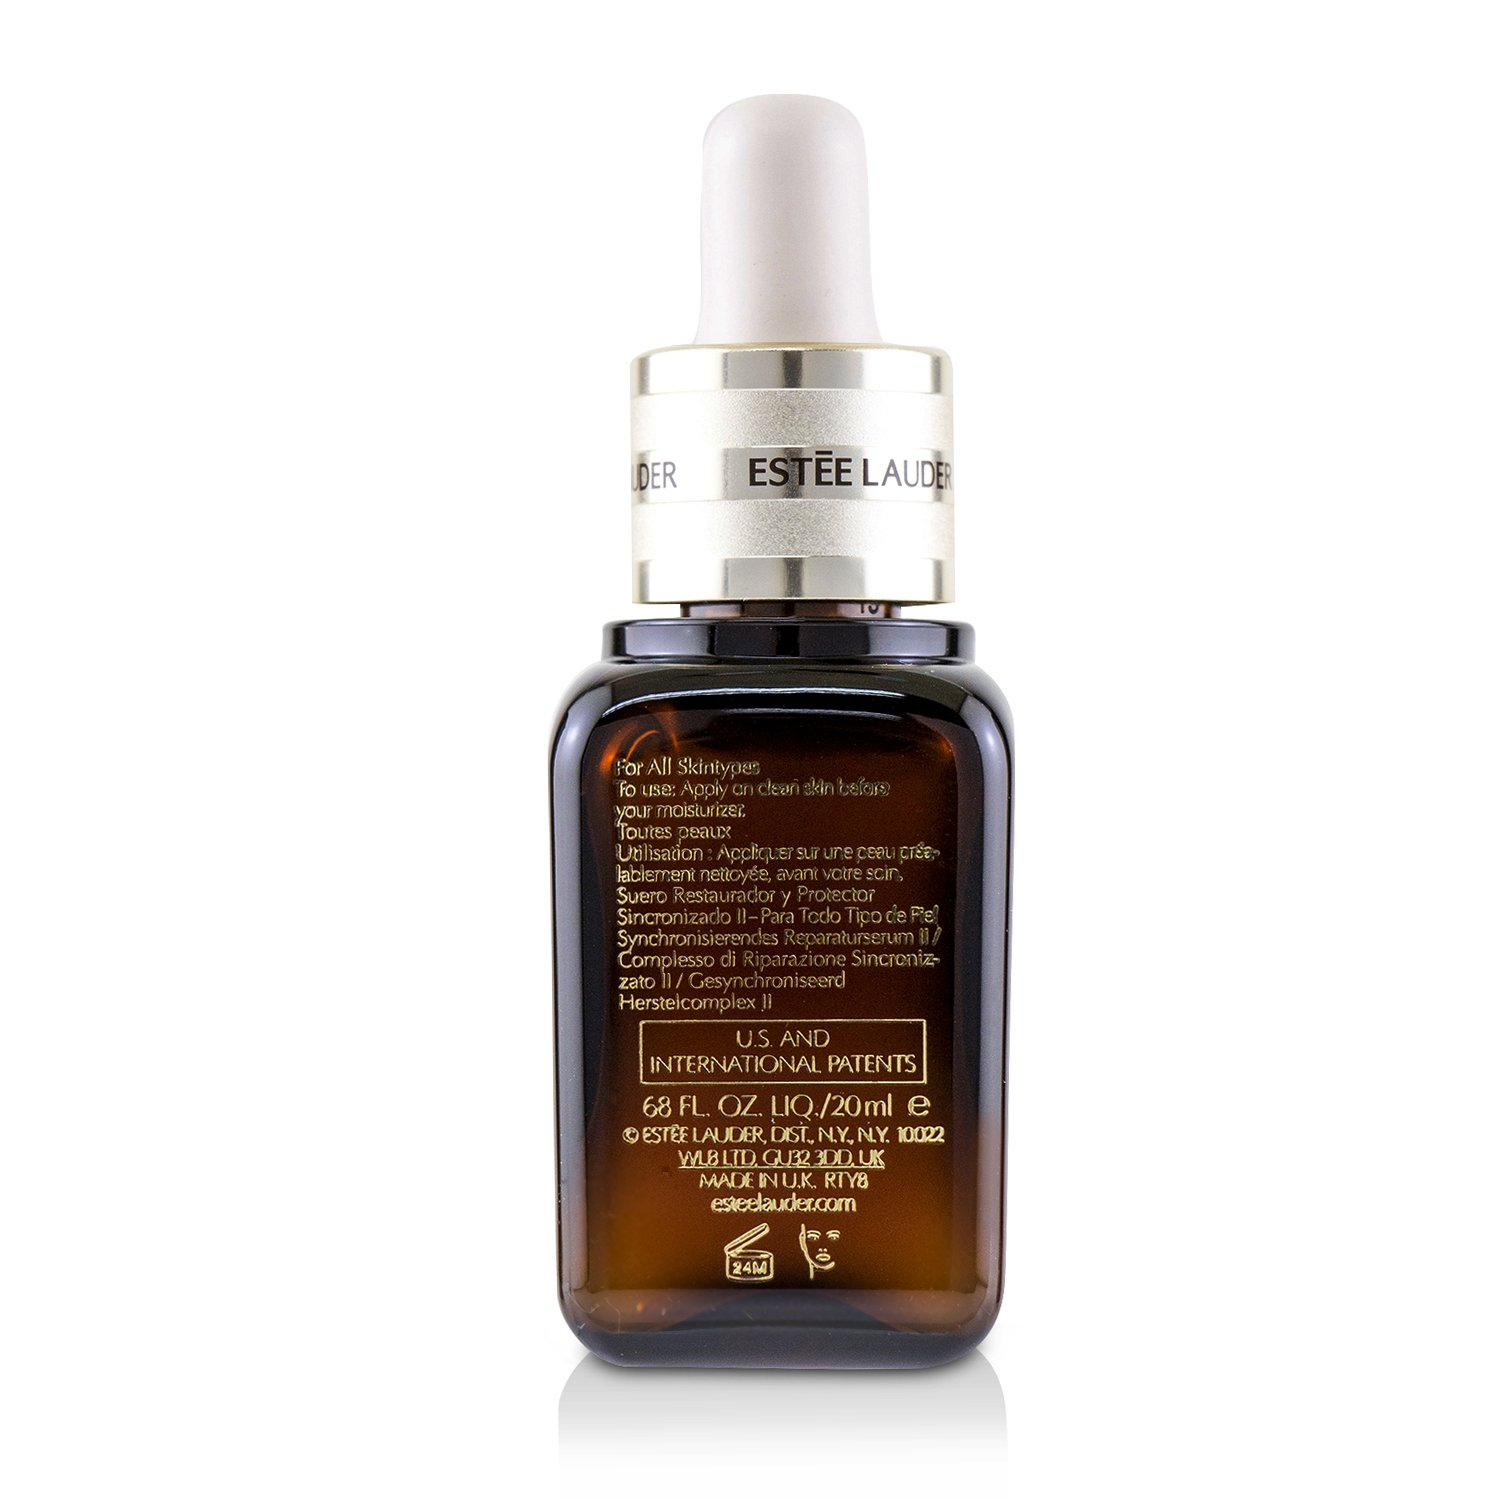 Estee-Lauder-Advanced-Night-Repair-Synchronized-Recovery-Complex-II-30ml-1oz thumbnail 4